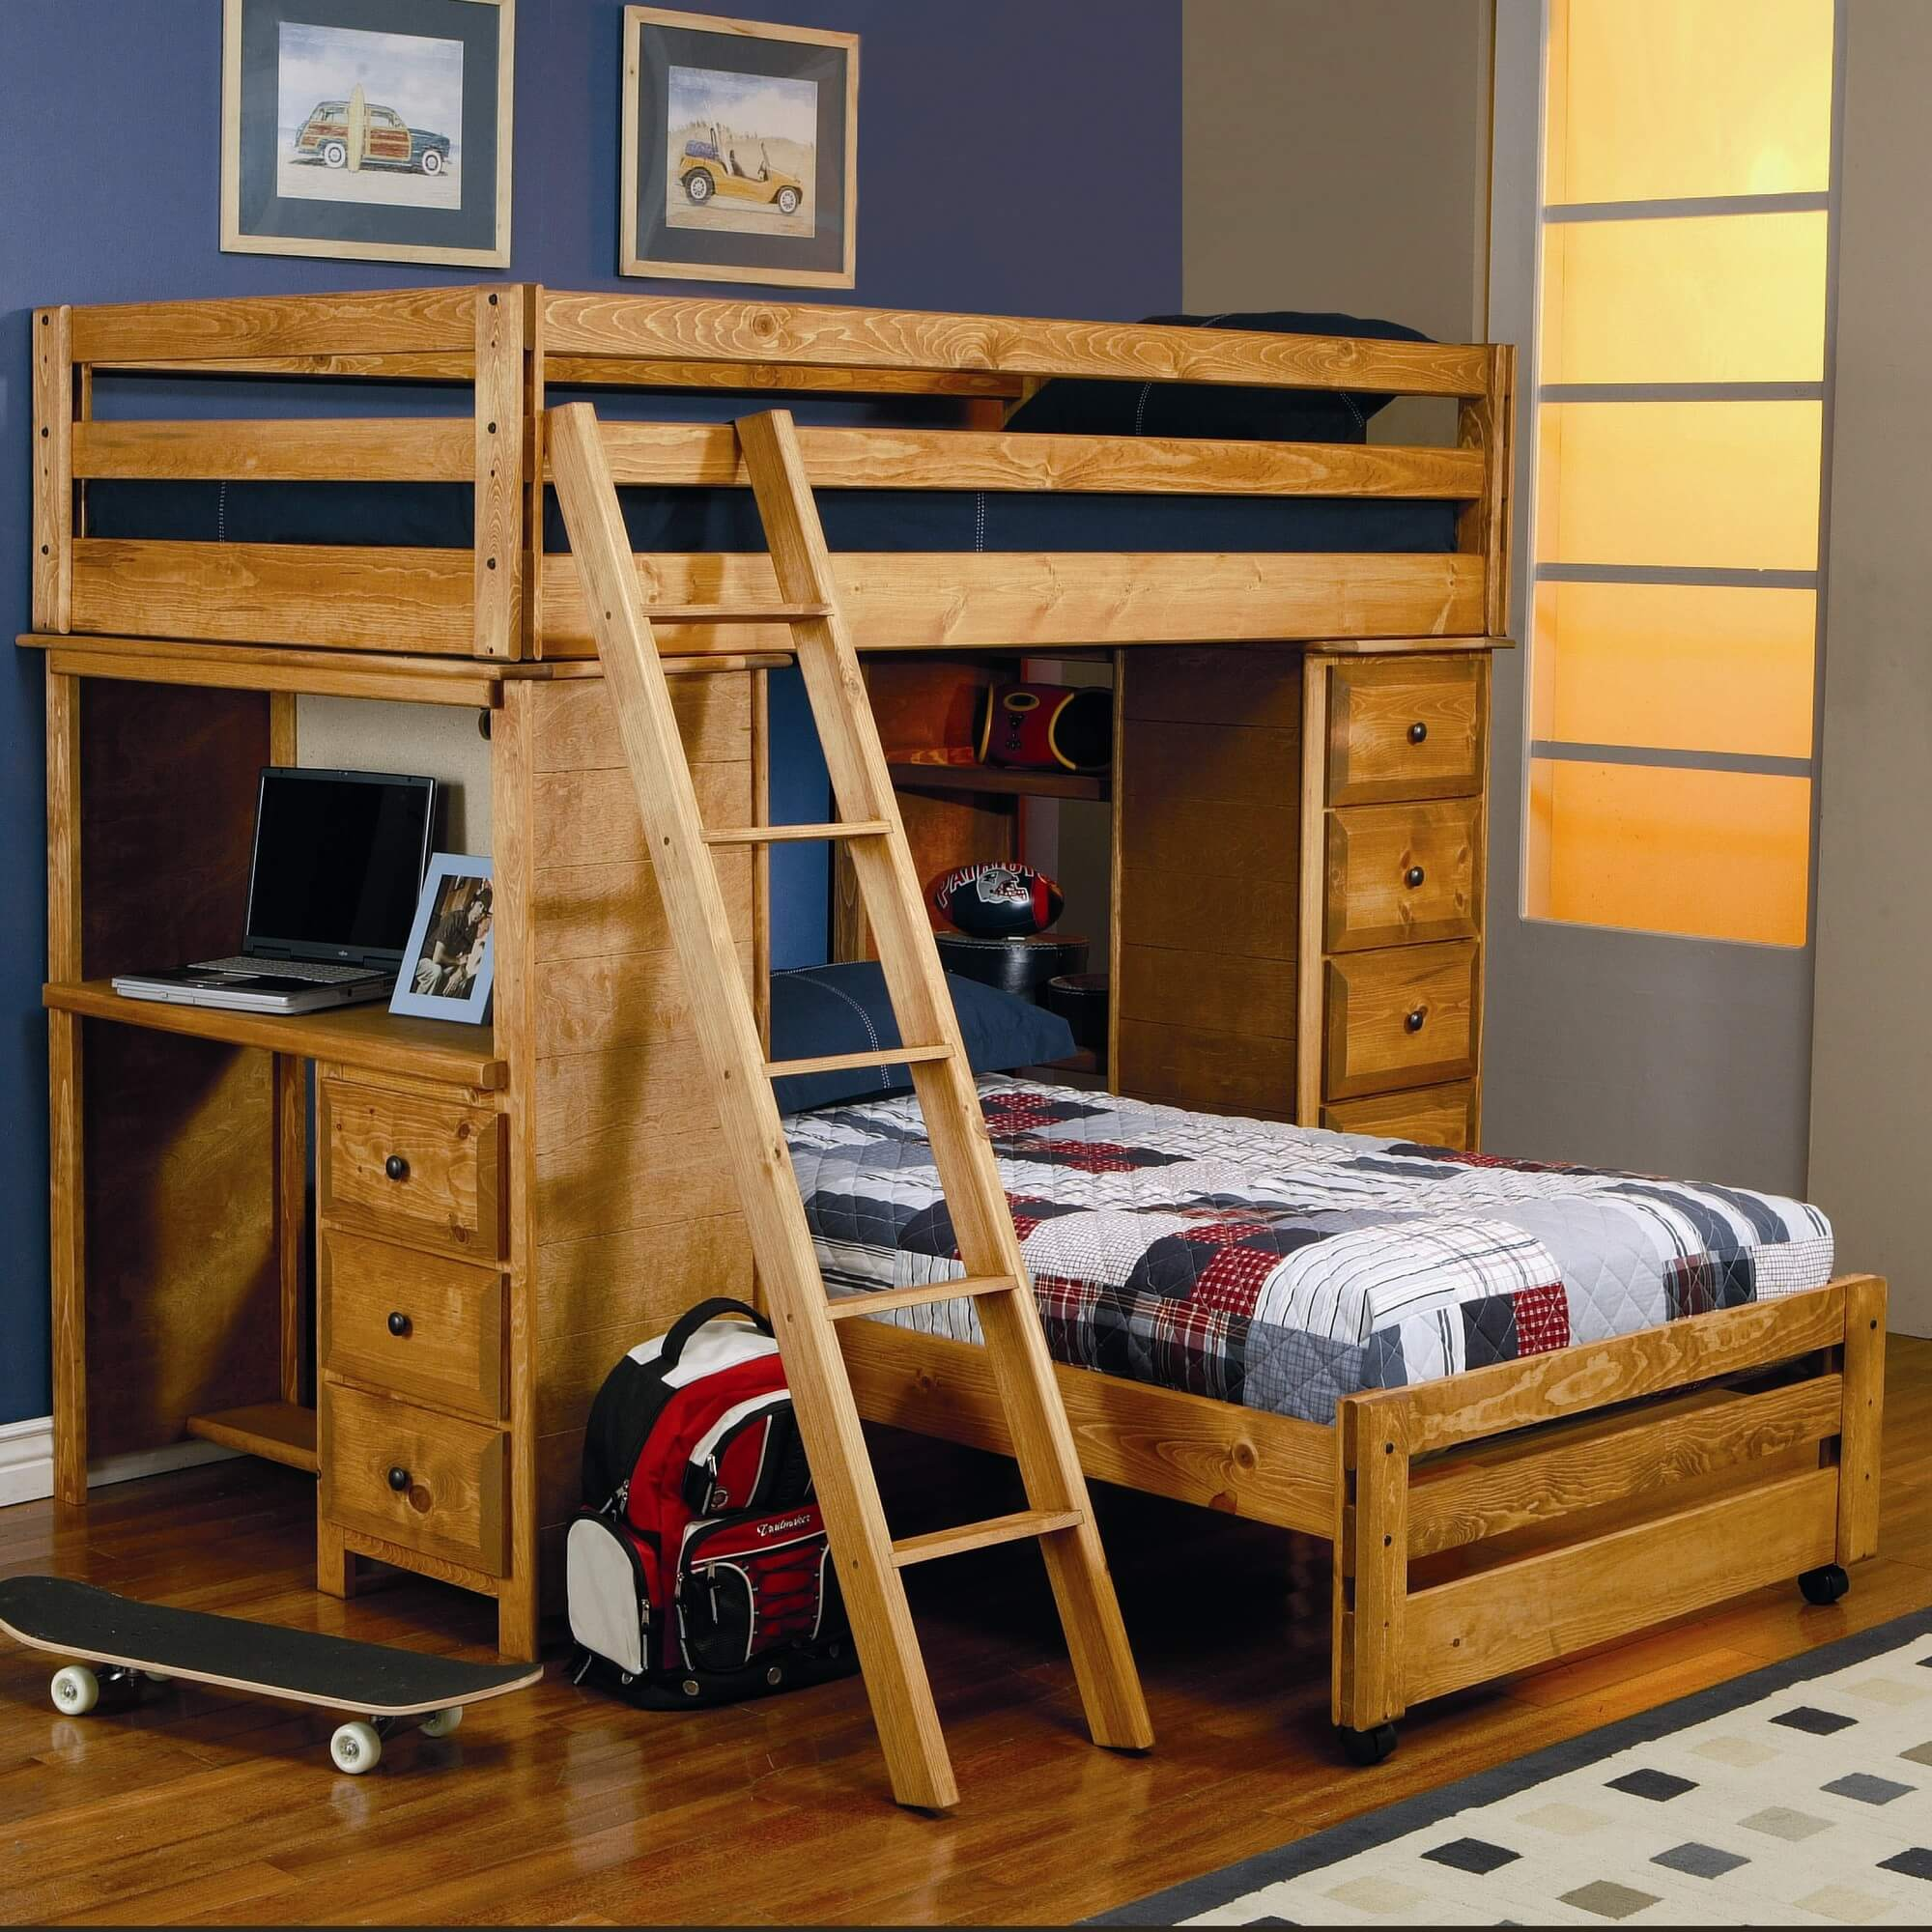 This solid pine L-shaped bunk with a honey finish is a twin over twin. The bottom twin is one wheels. One side includes a desk with drawers and the other side drawers and open shelving.